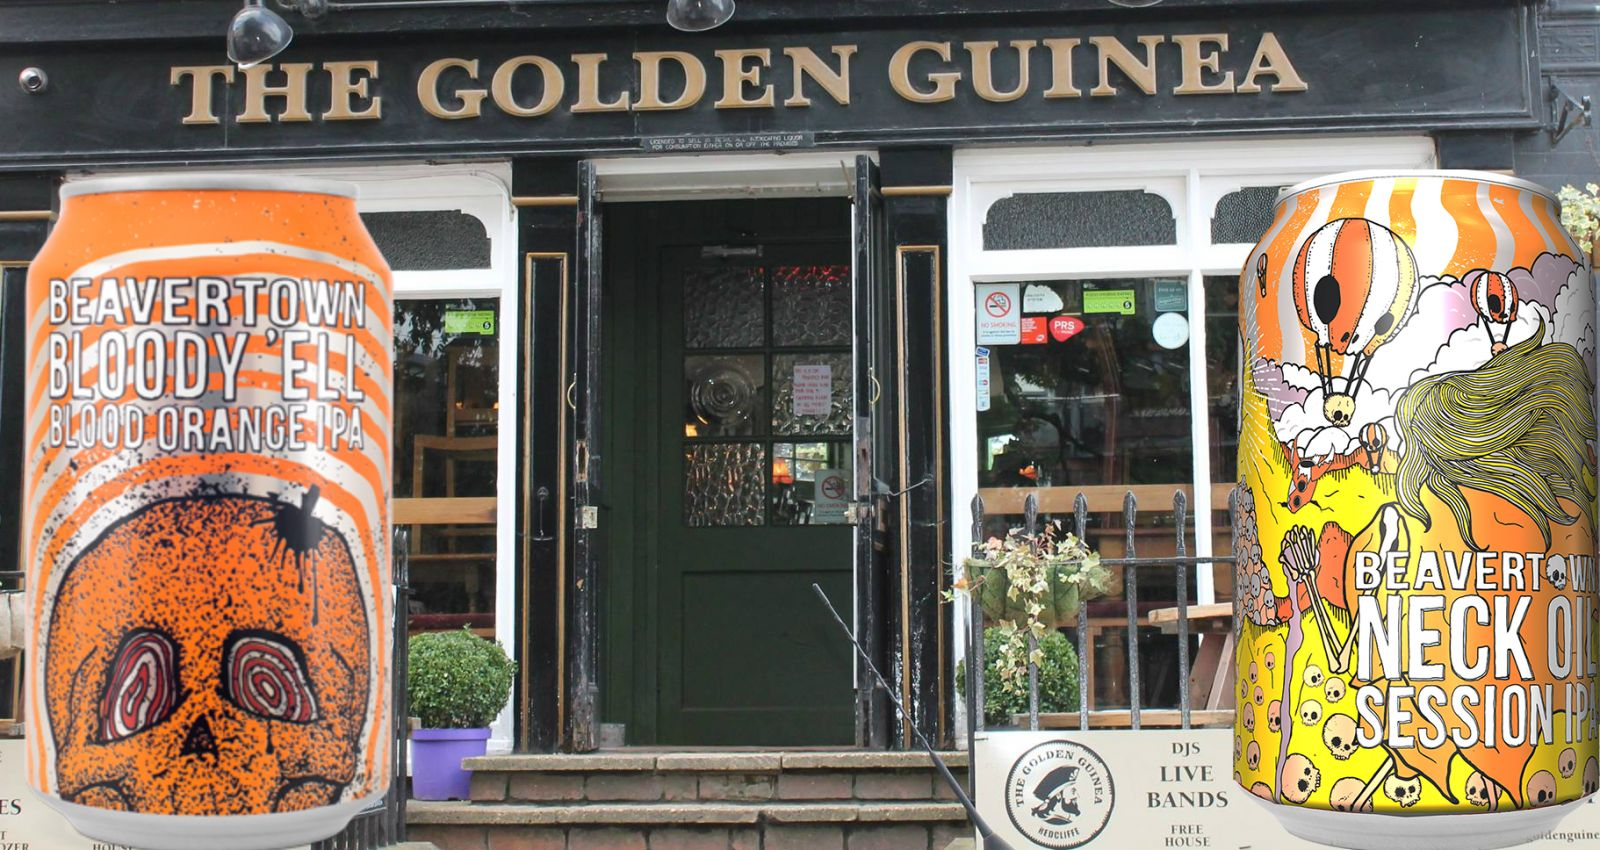 The Golden Guinea will be offering some amazing beers!